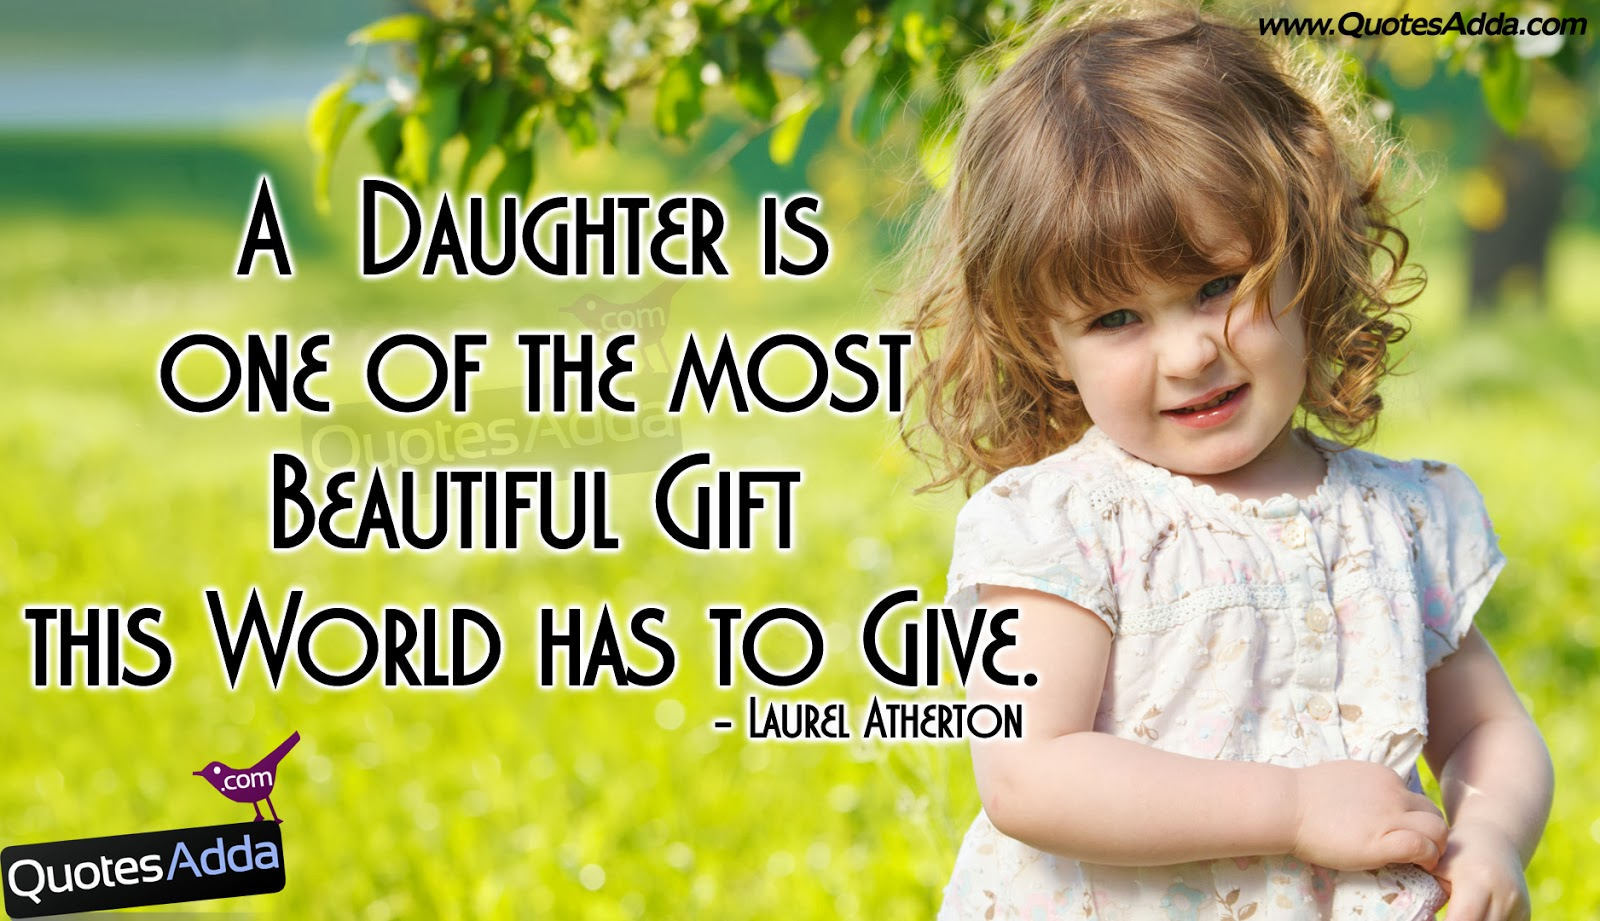 Best Quotations about Girls | Quotes Adda.com | Telugu Quotes | Tamil ...